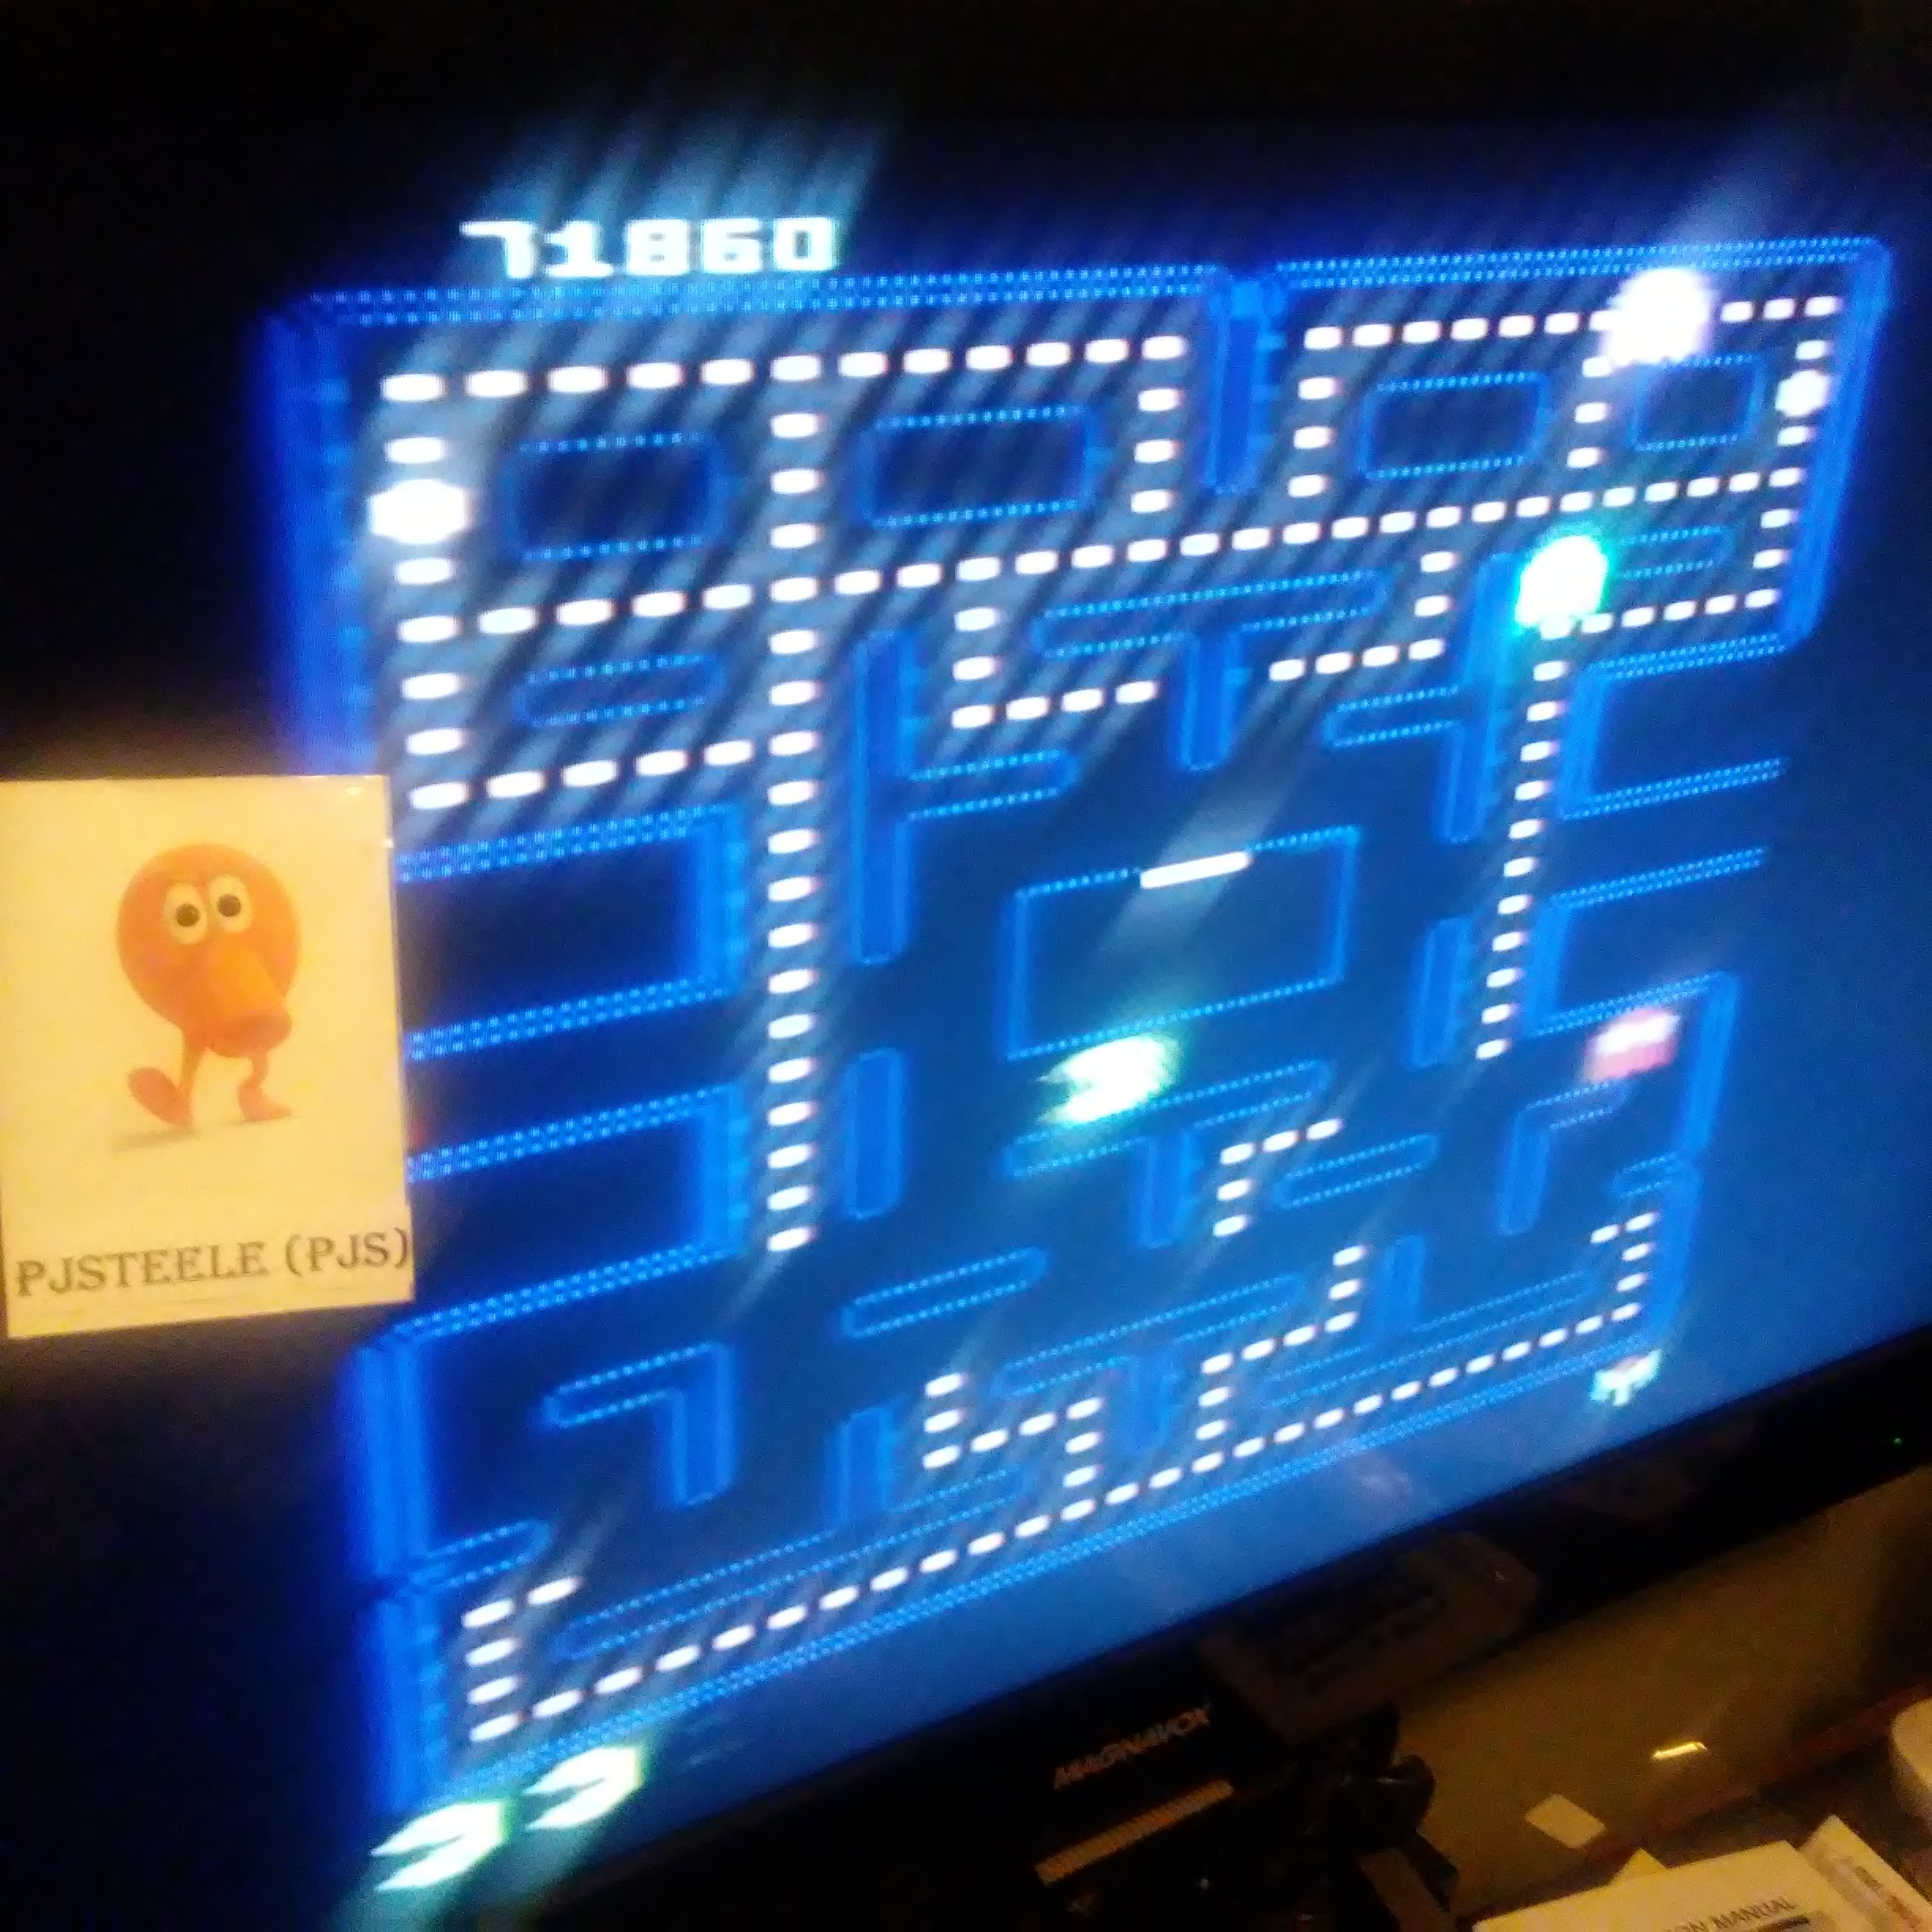 Pjsteele: Pac-Man Collection: Pac-Man [Galaxian One/Plus Off/Fast On] (Atari 7800) 71,860 points on 2018-09-19 20:08:12